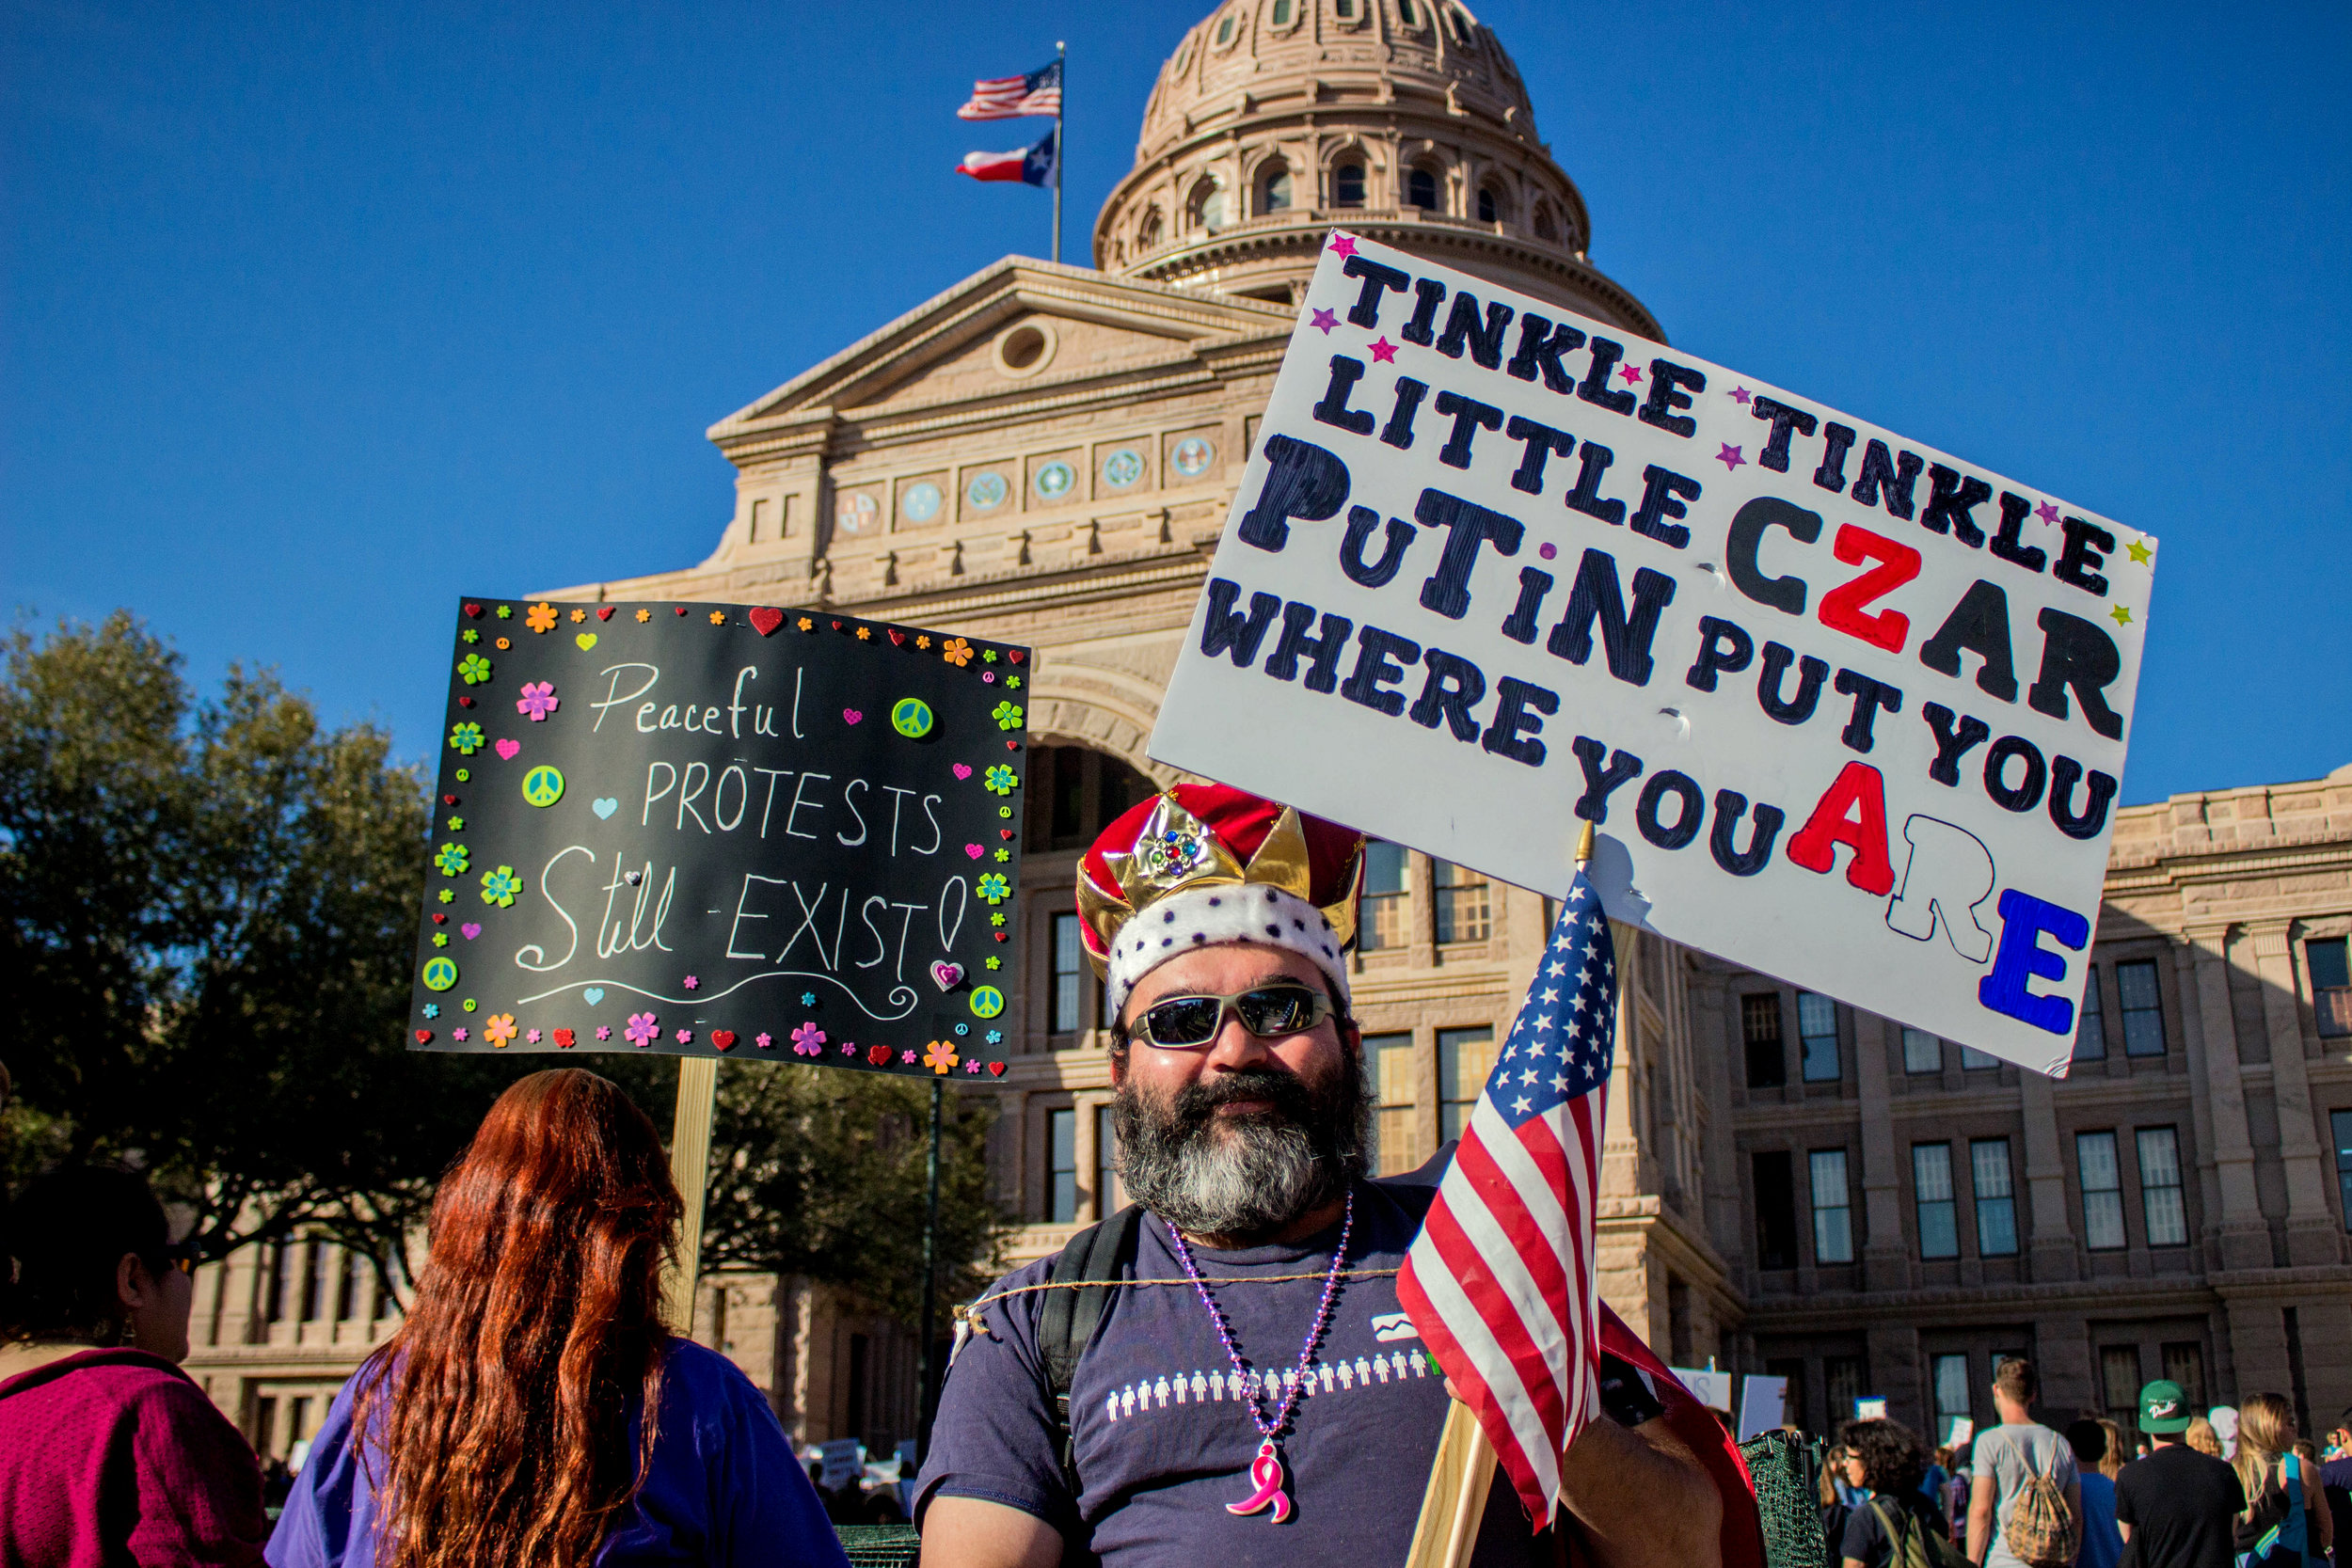 """A man wearing a crown holds a sign that says, """"Tinkle, tinkle little czar Putin put you where you are"""" in front of the Capitol."""